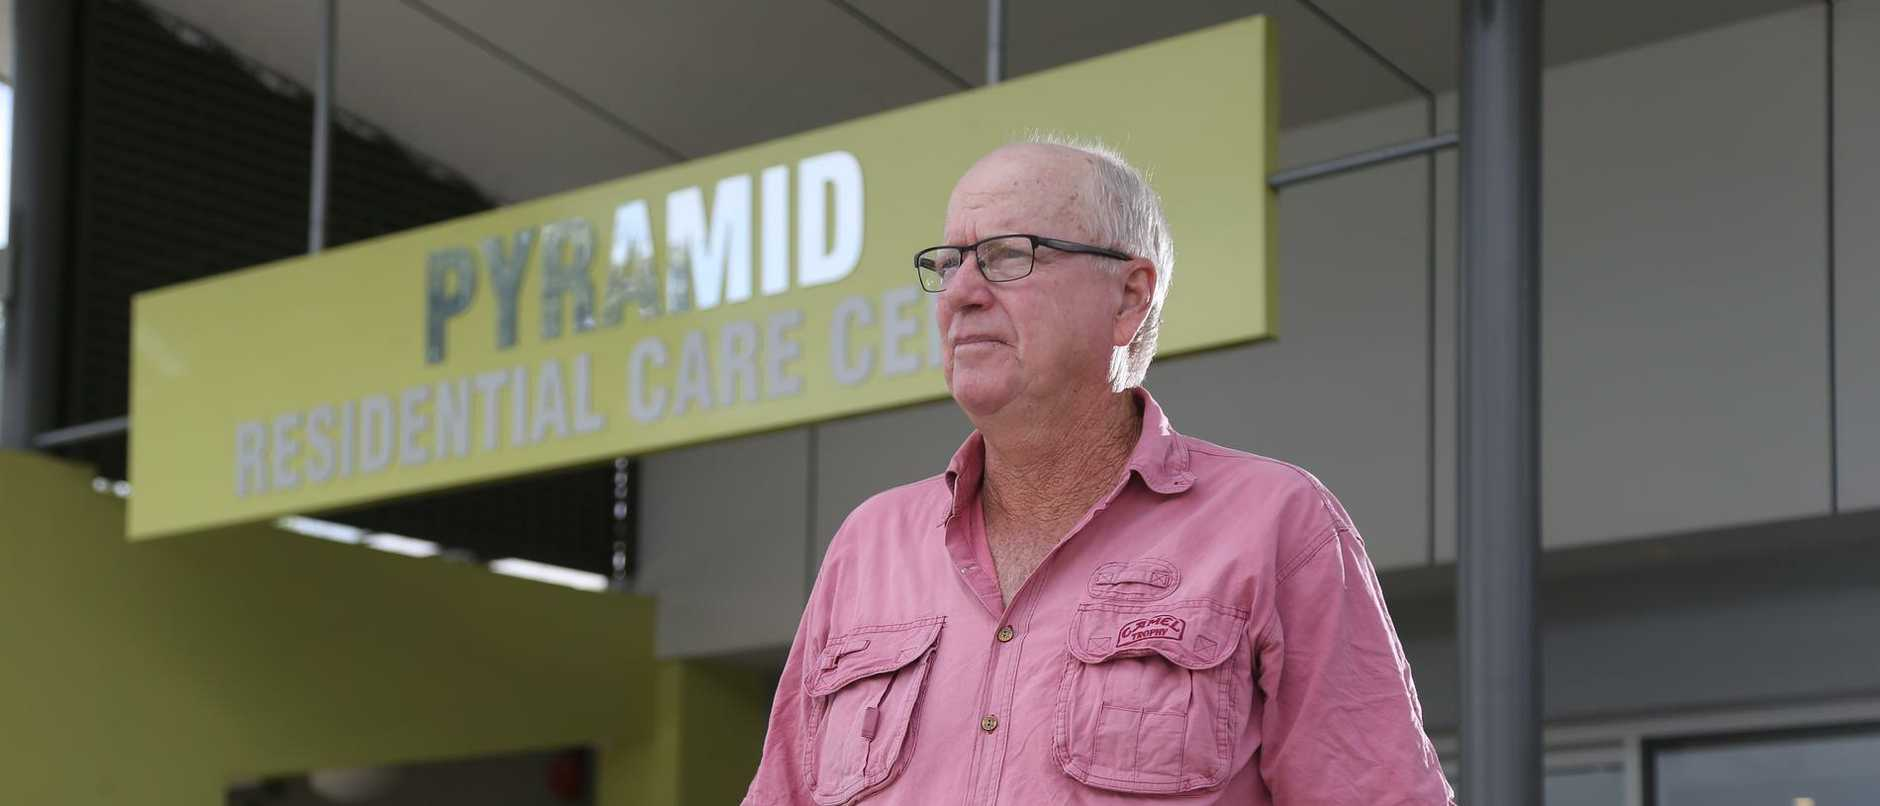 Pyramid Residential Care Centre nears full compliance after audit